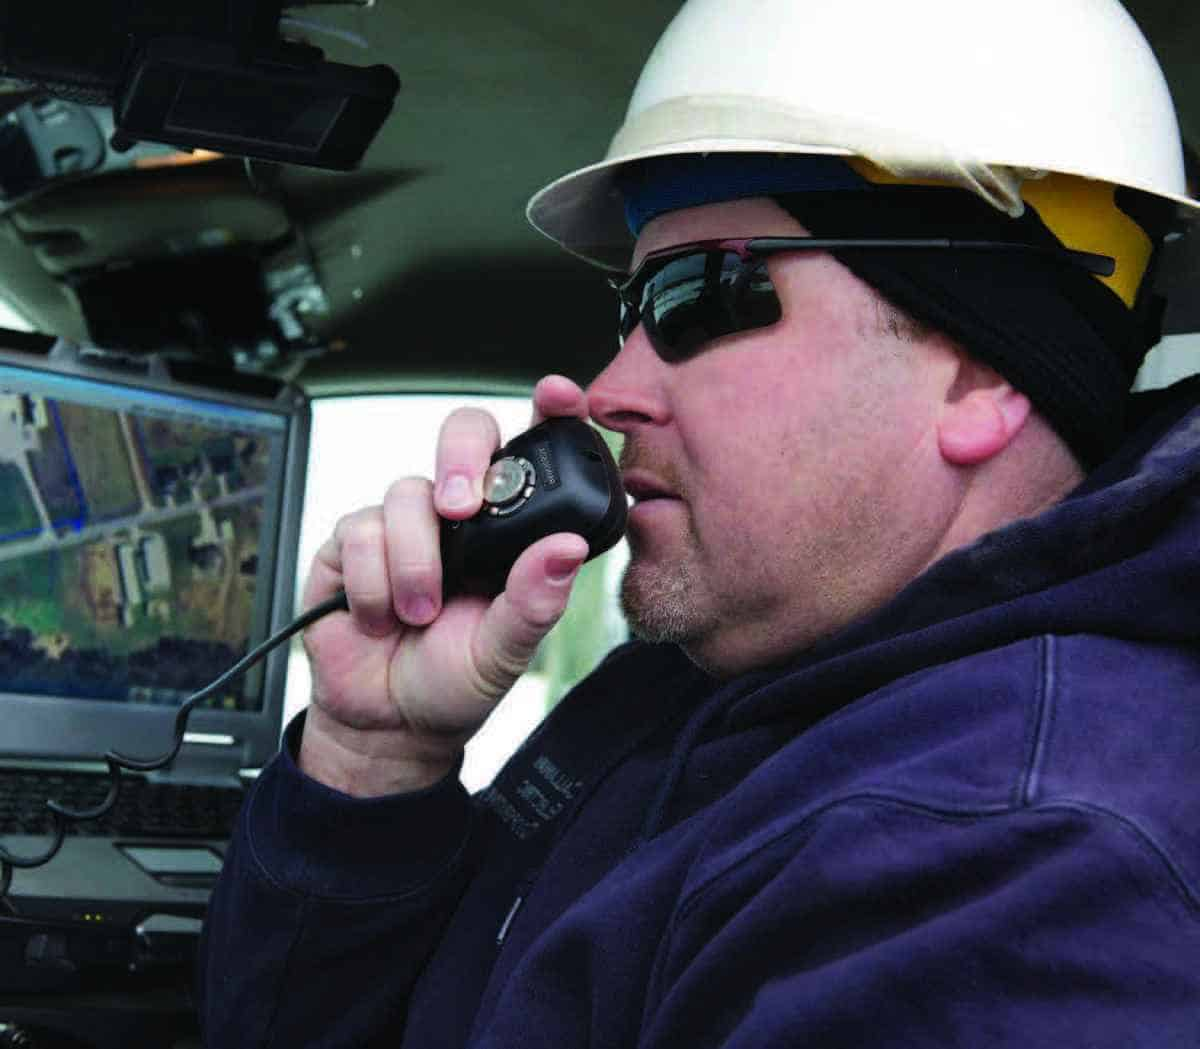 Radios Safe for Drivers Feature Digital Push-to-Talk Technology